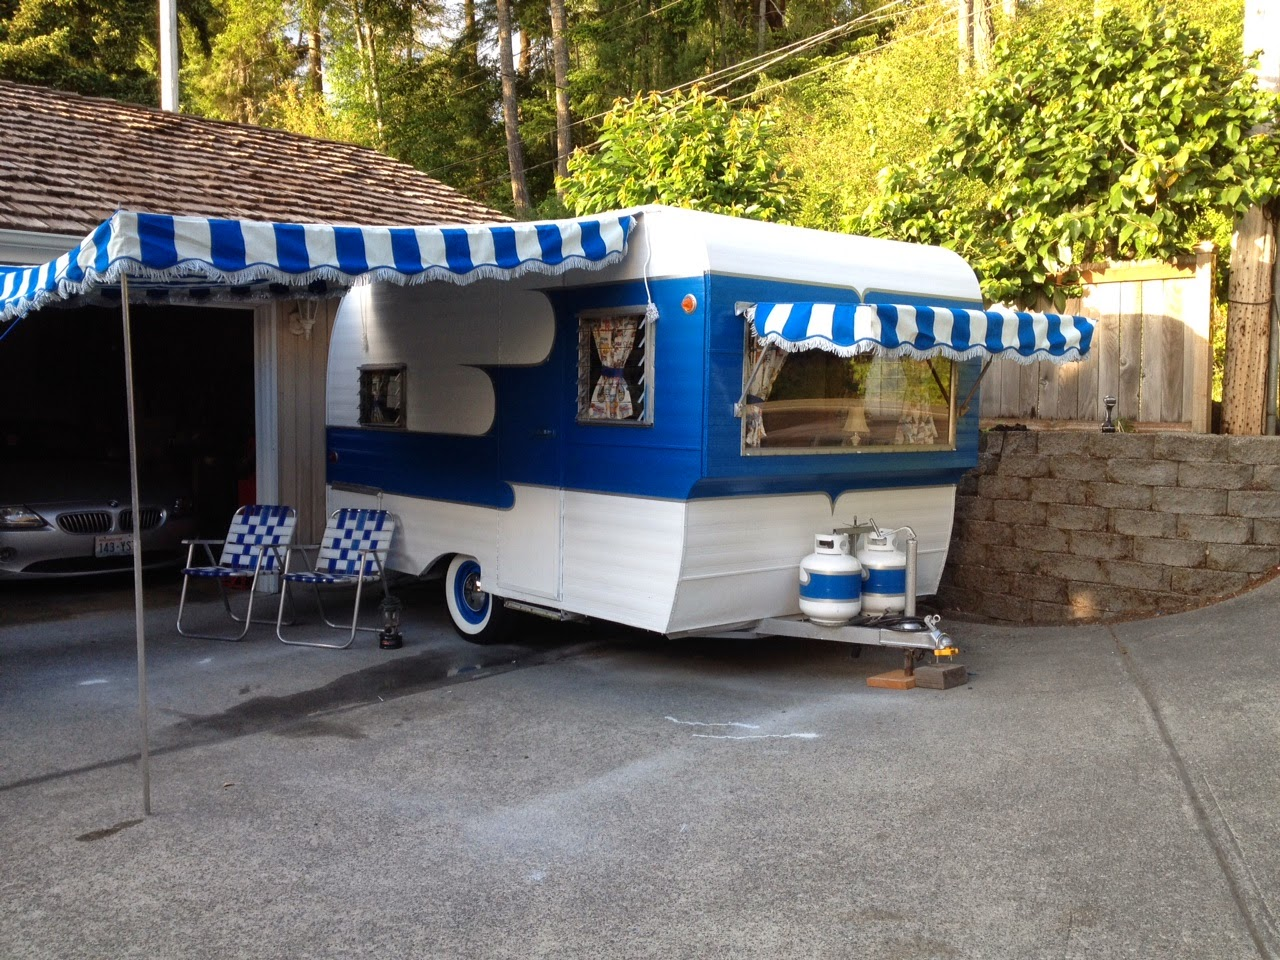 Vintage Awnings: Accentuate Your Trailer With A Vintage ...